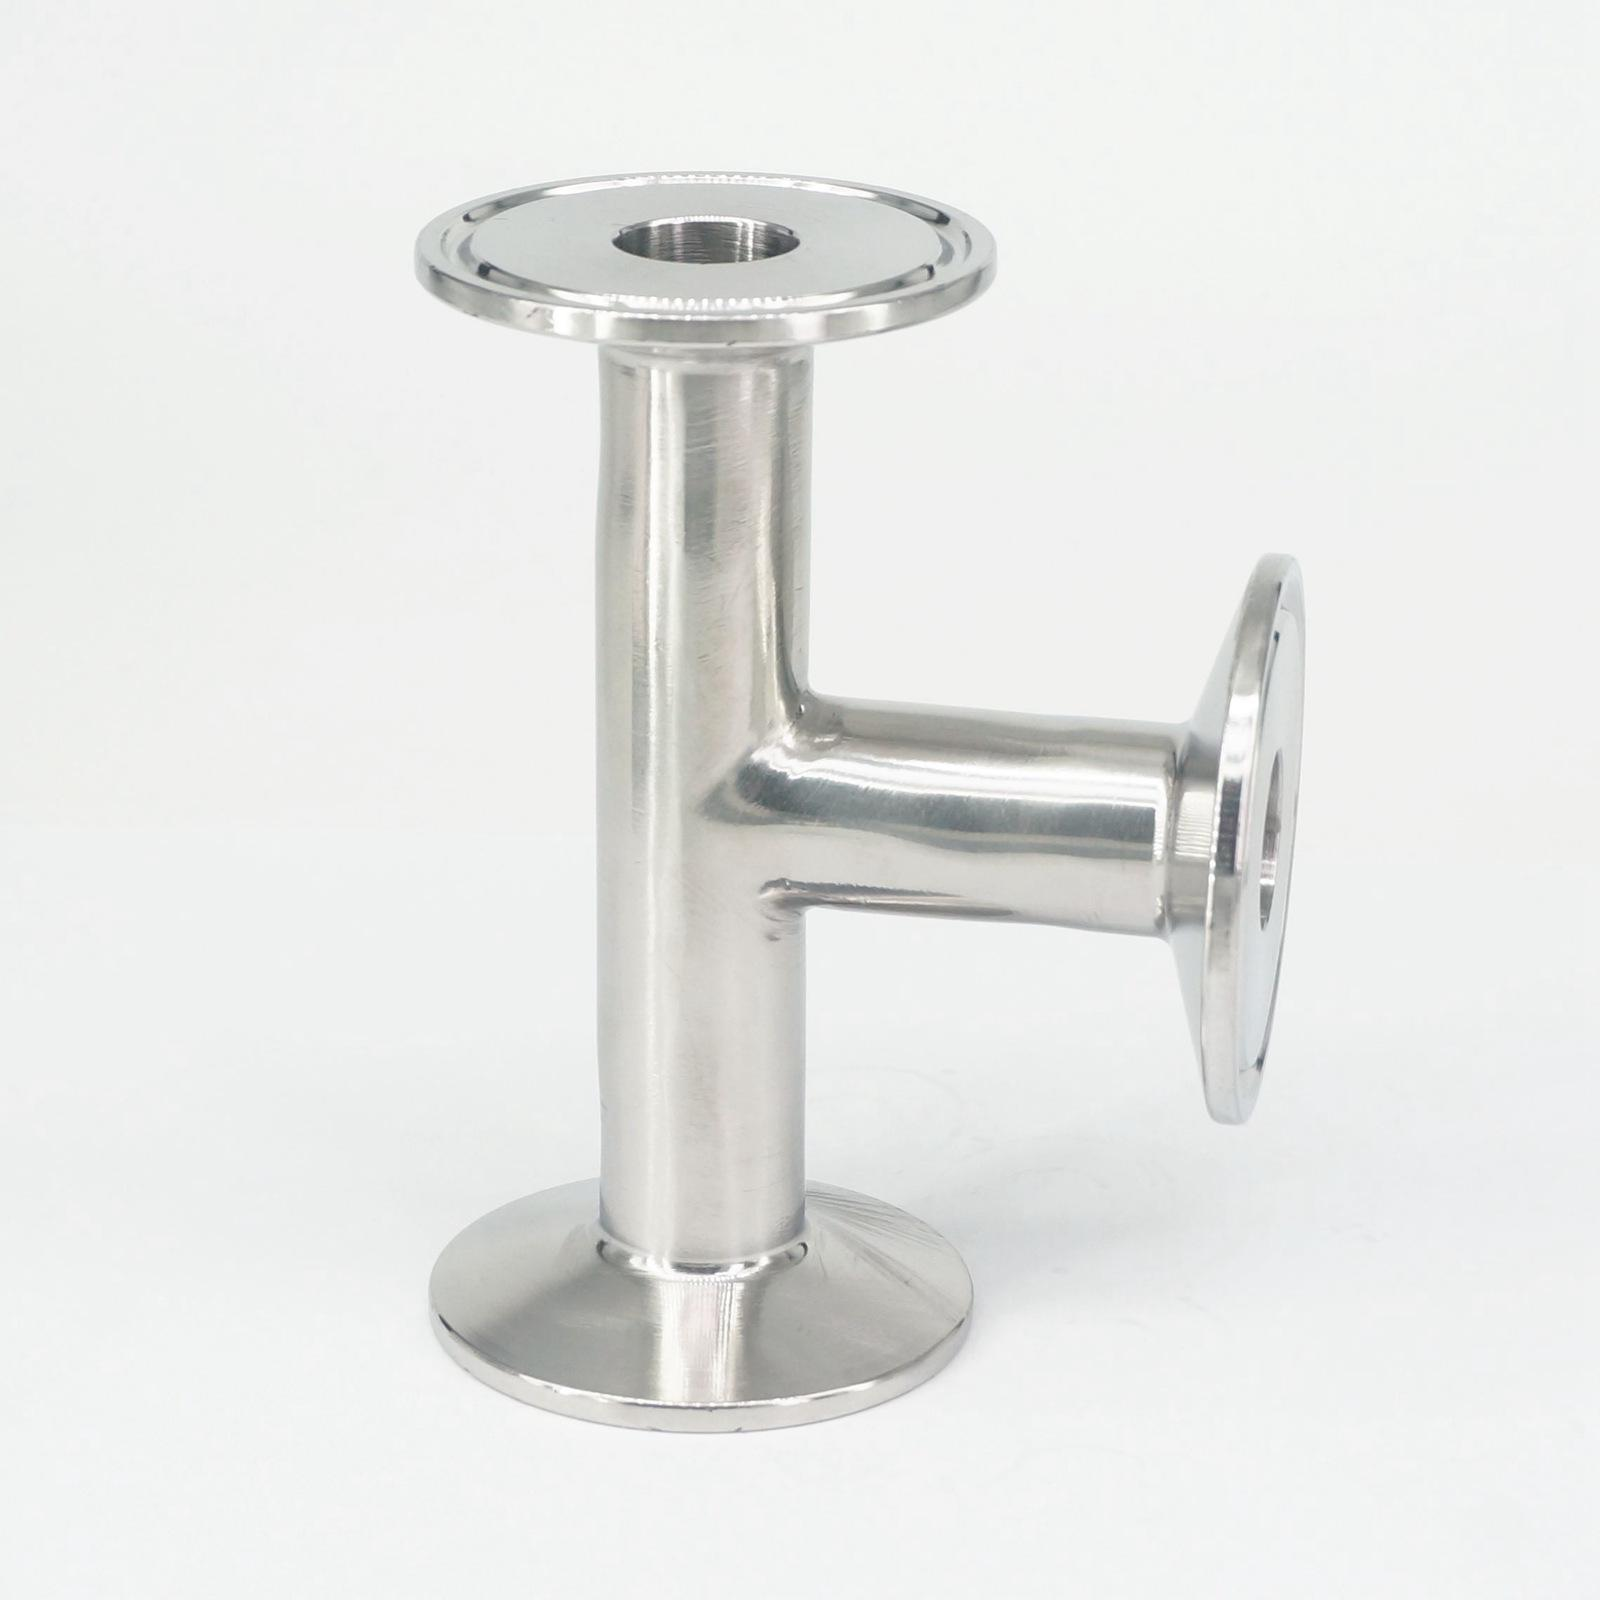 19mm O/D 304 Stainless Steel Sanitary Ferrule Tee Connector Pipe Fitting Tri Clamp19mm O/D 304 Stainless Steel Sanitary Ferrule Tee Connector Pipe Fitting Tri Clamp